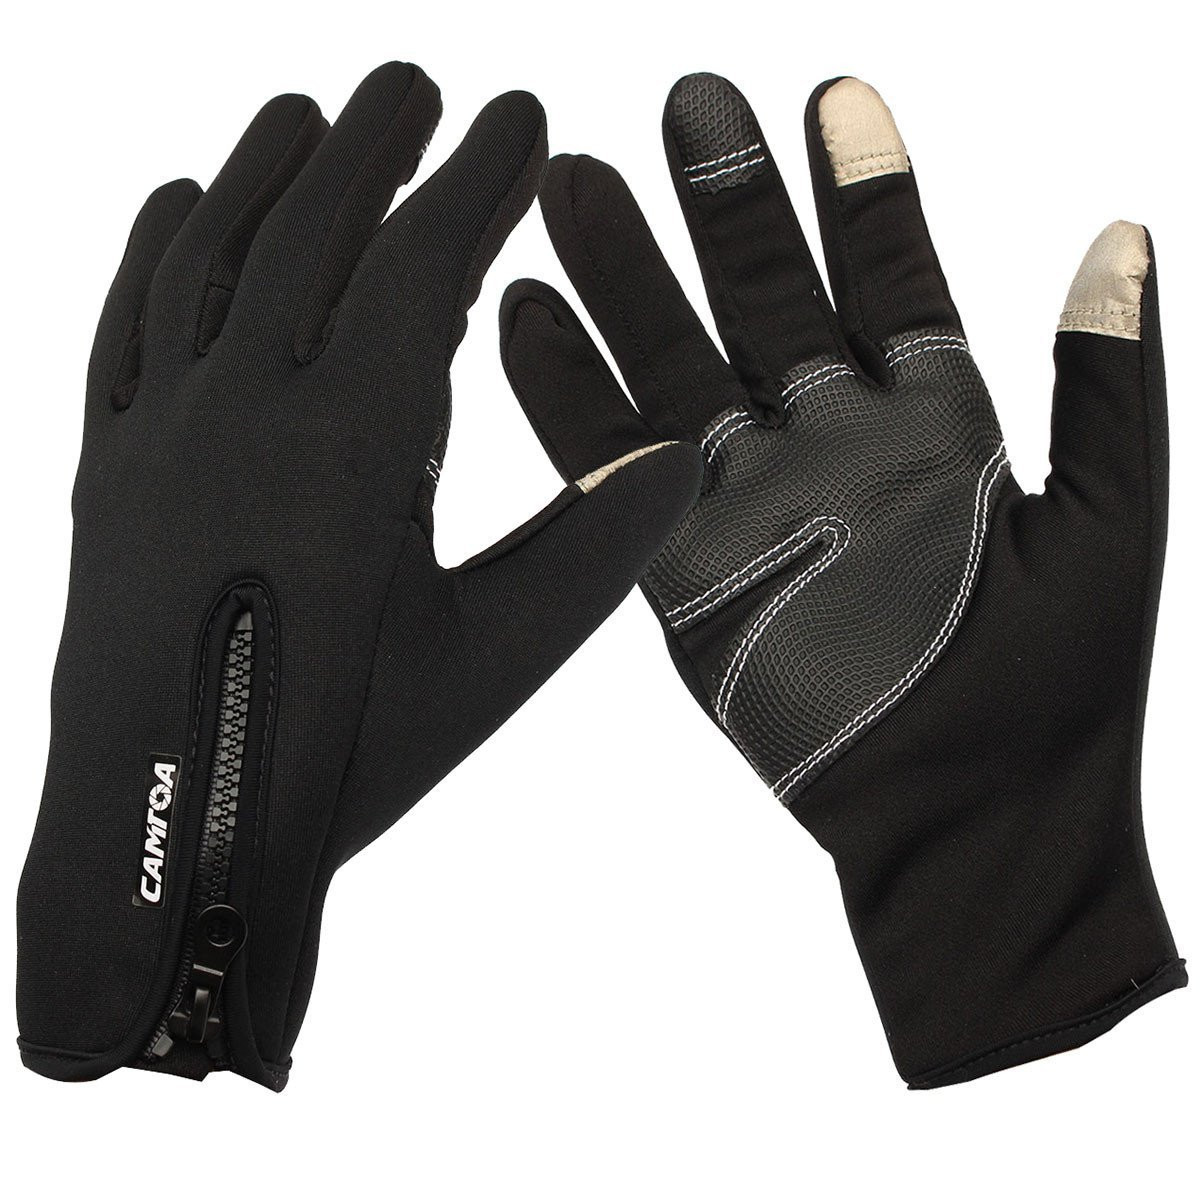 2 pair Hyflex Ansell Diving Lobstering Fishing Gloves Cut Resistance Technology